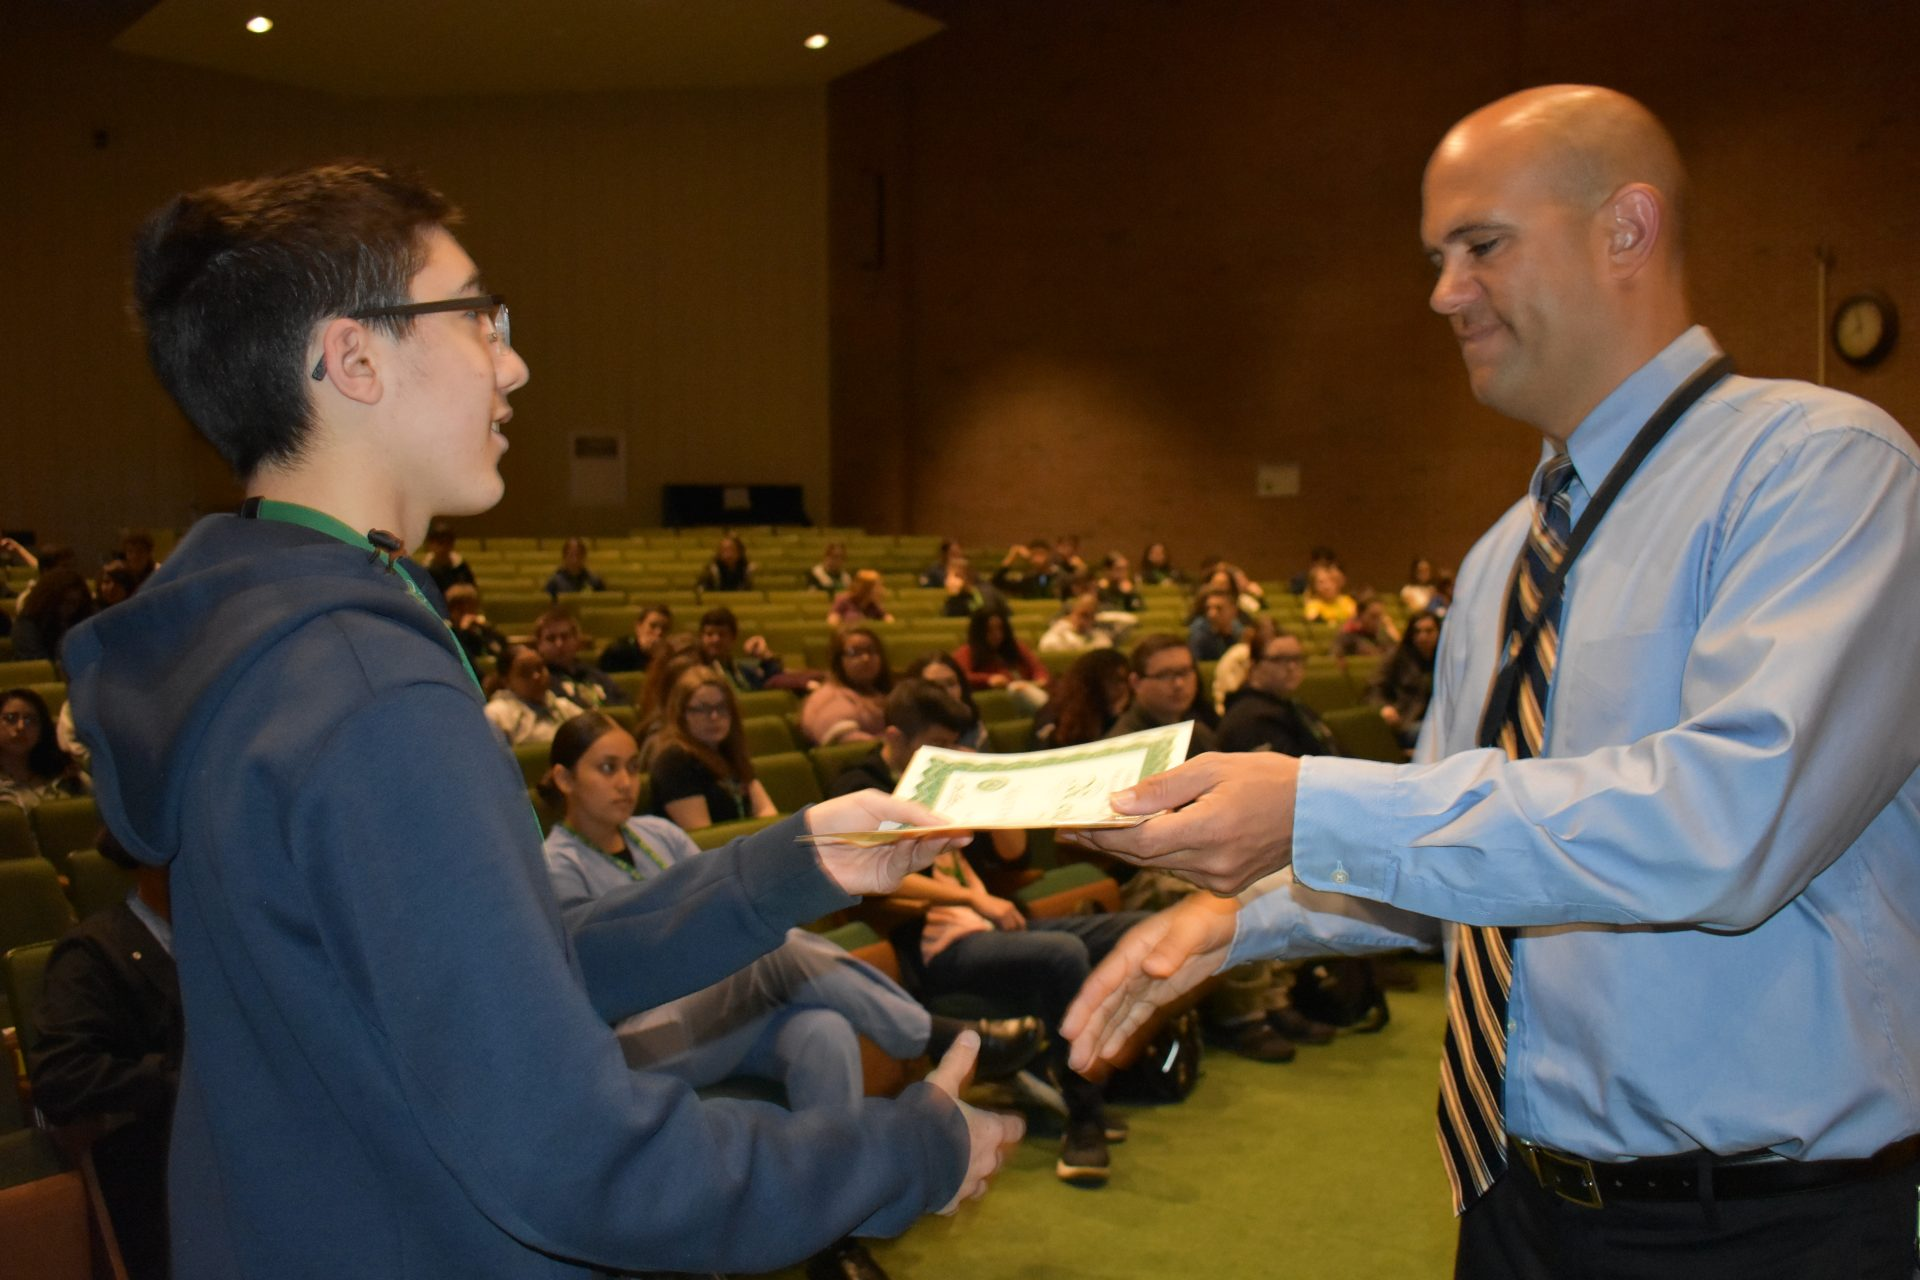 Renaissance Awards student receives an award from Mr. Viera